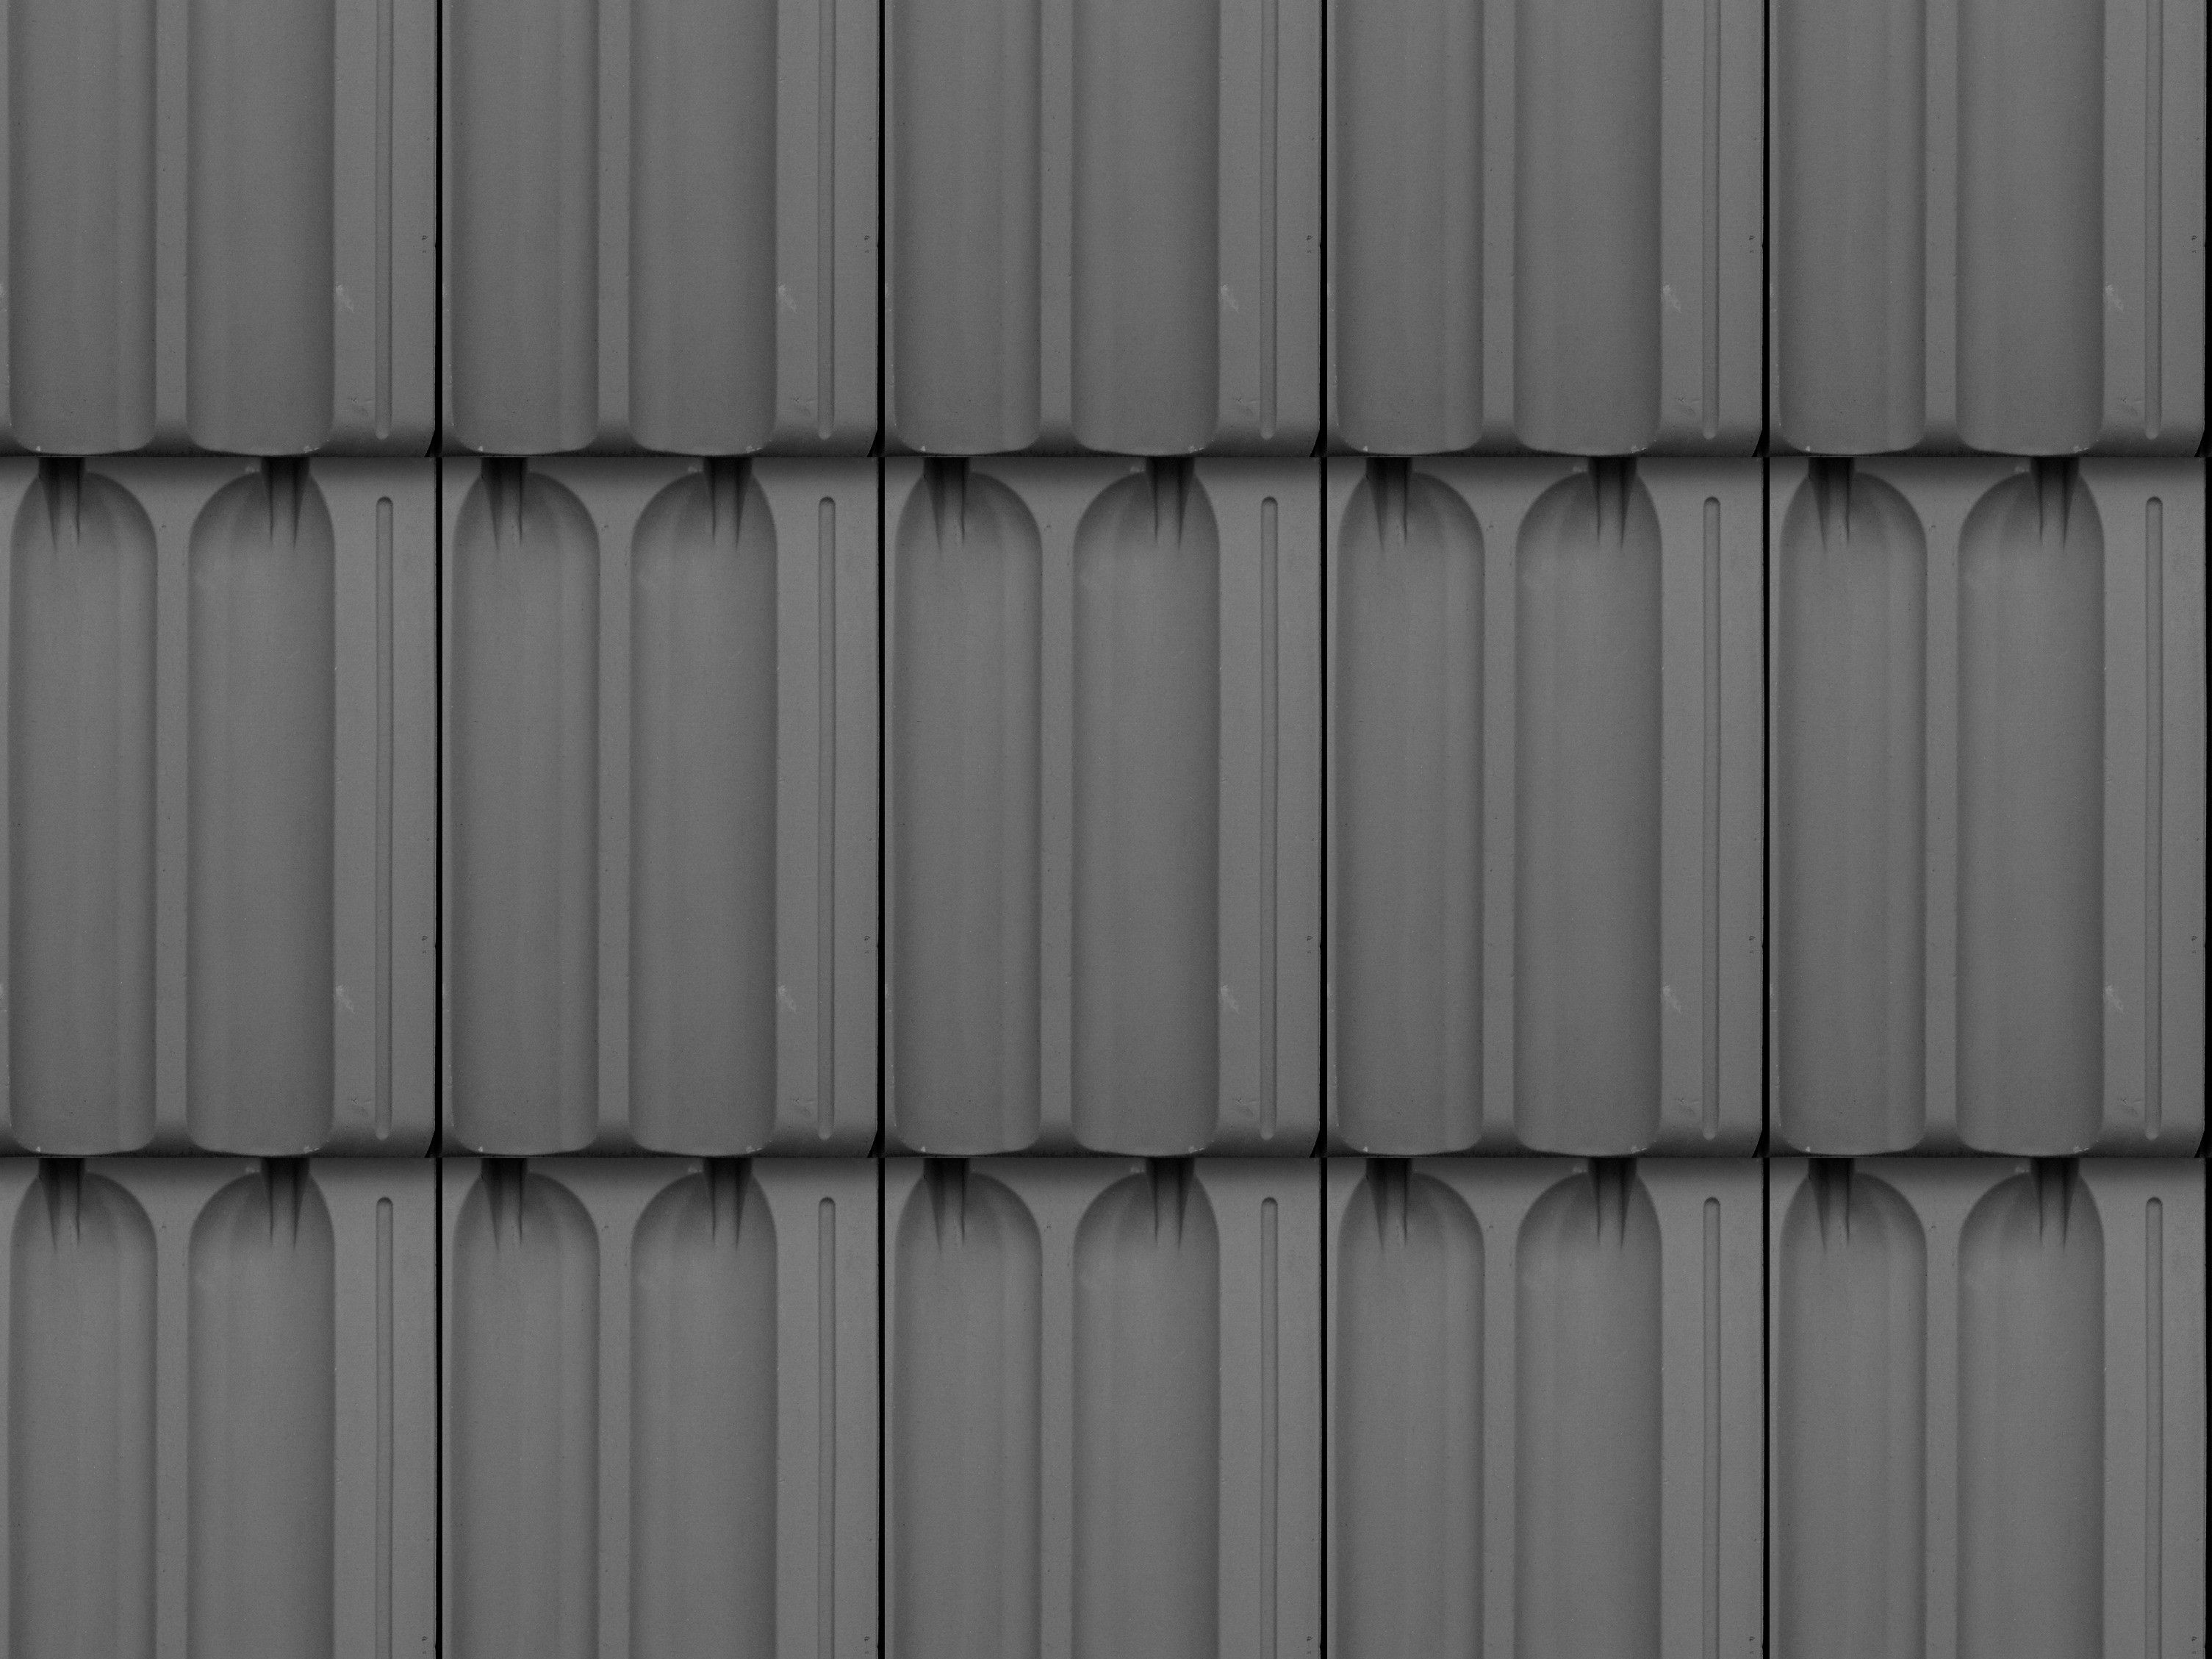 Best Roof Texture0013 Free Textures Roof Pinterest Roof 640 x 480